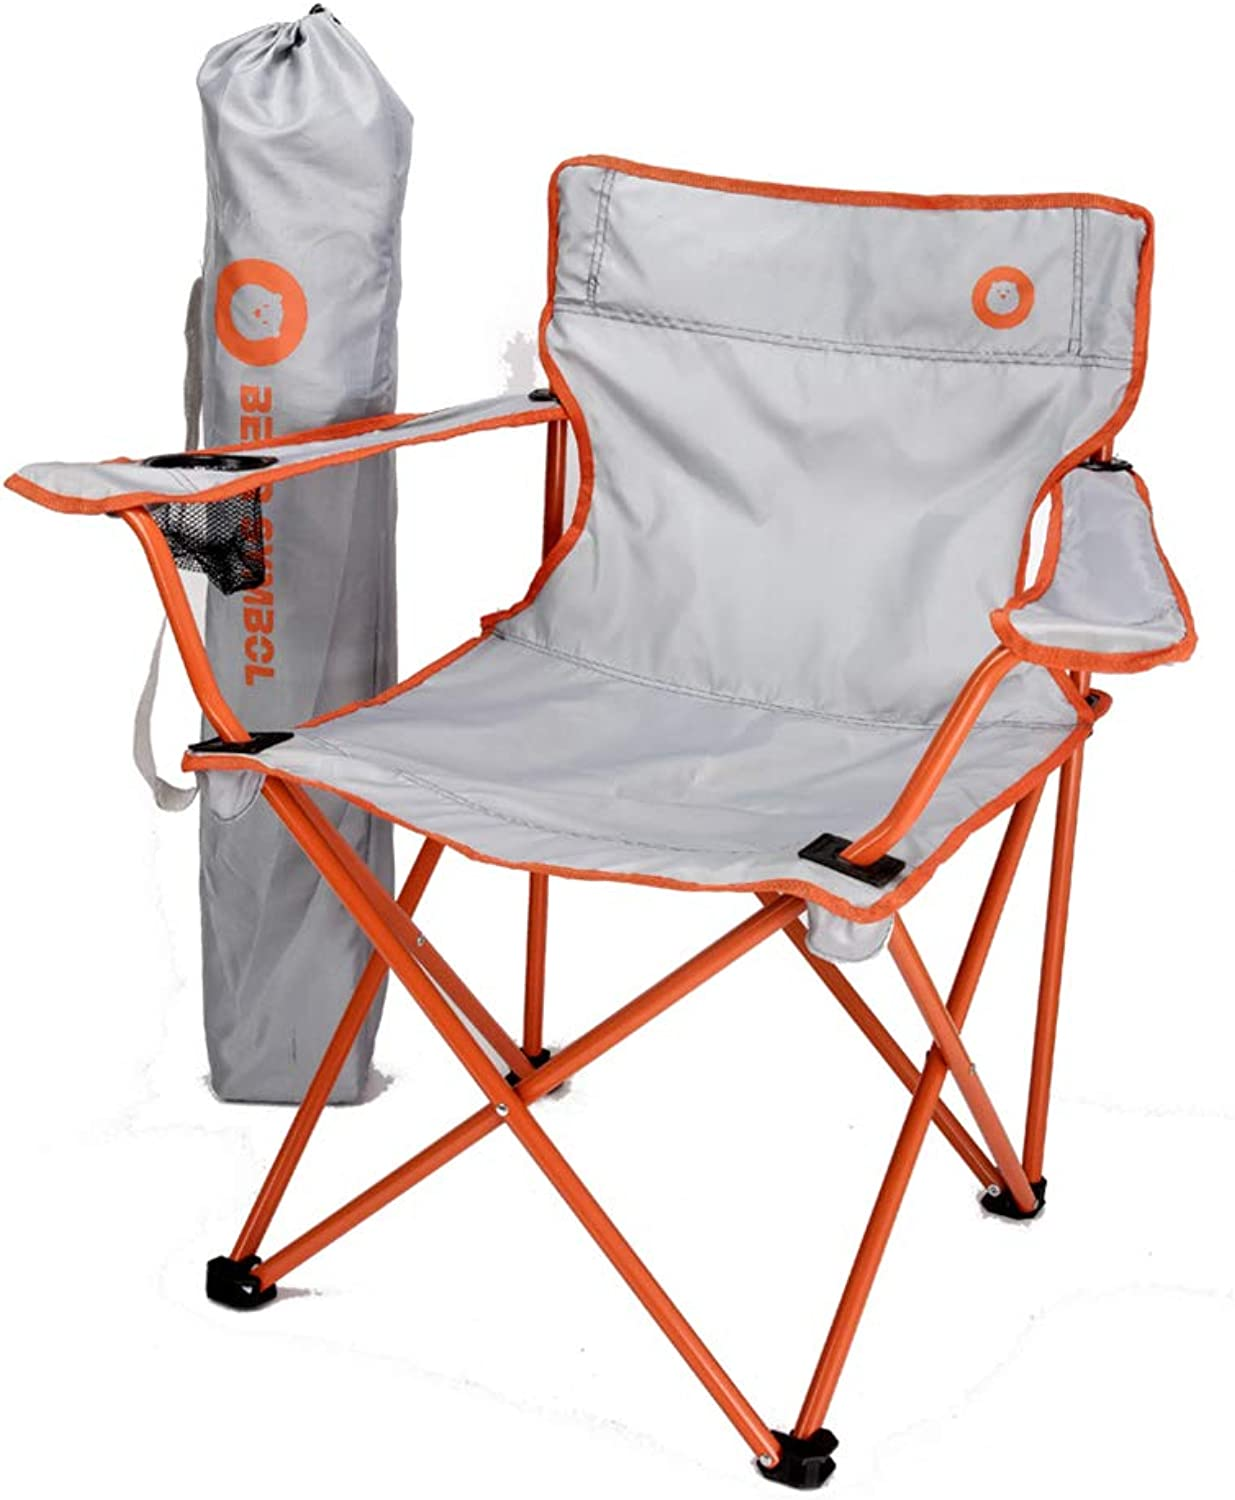 Camping Chair Folding Chair Ultra Light Portable Camping, Hiking, Picnic, Fishing, Sports 2 colors